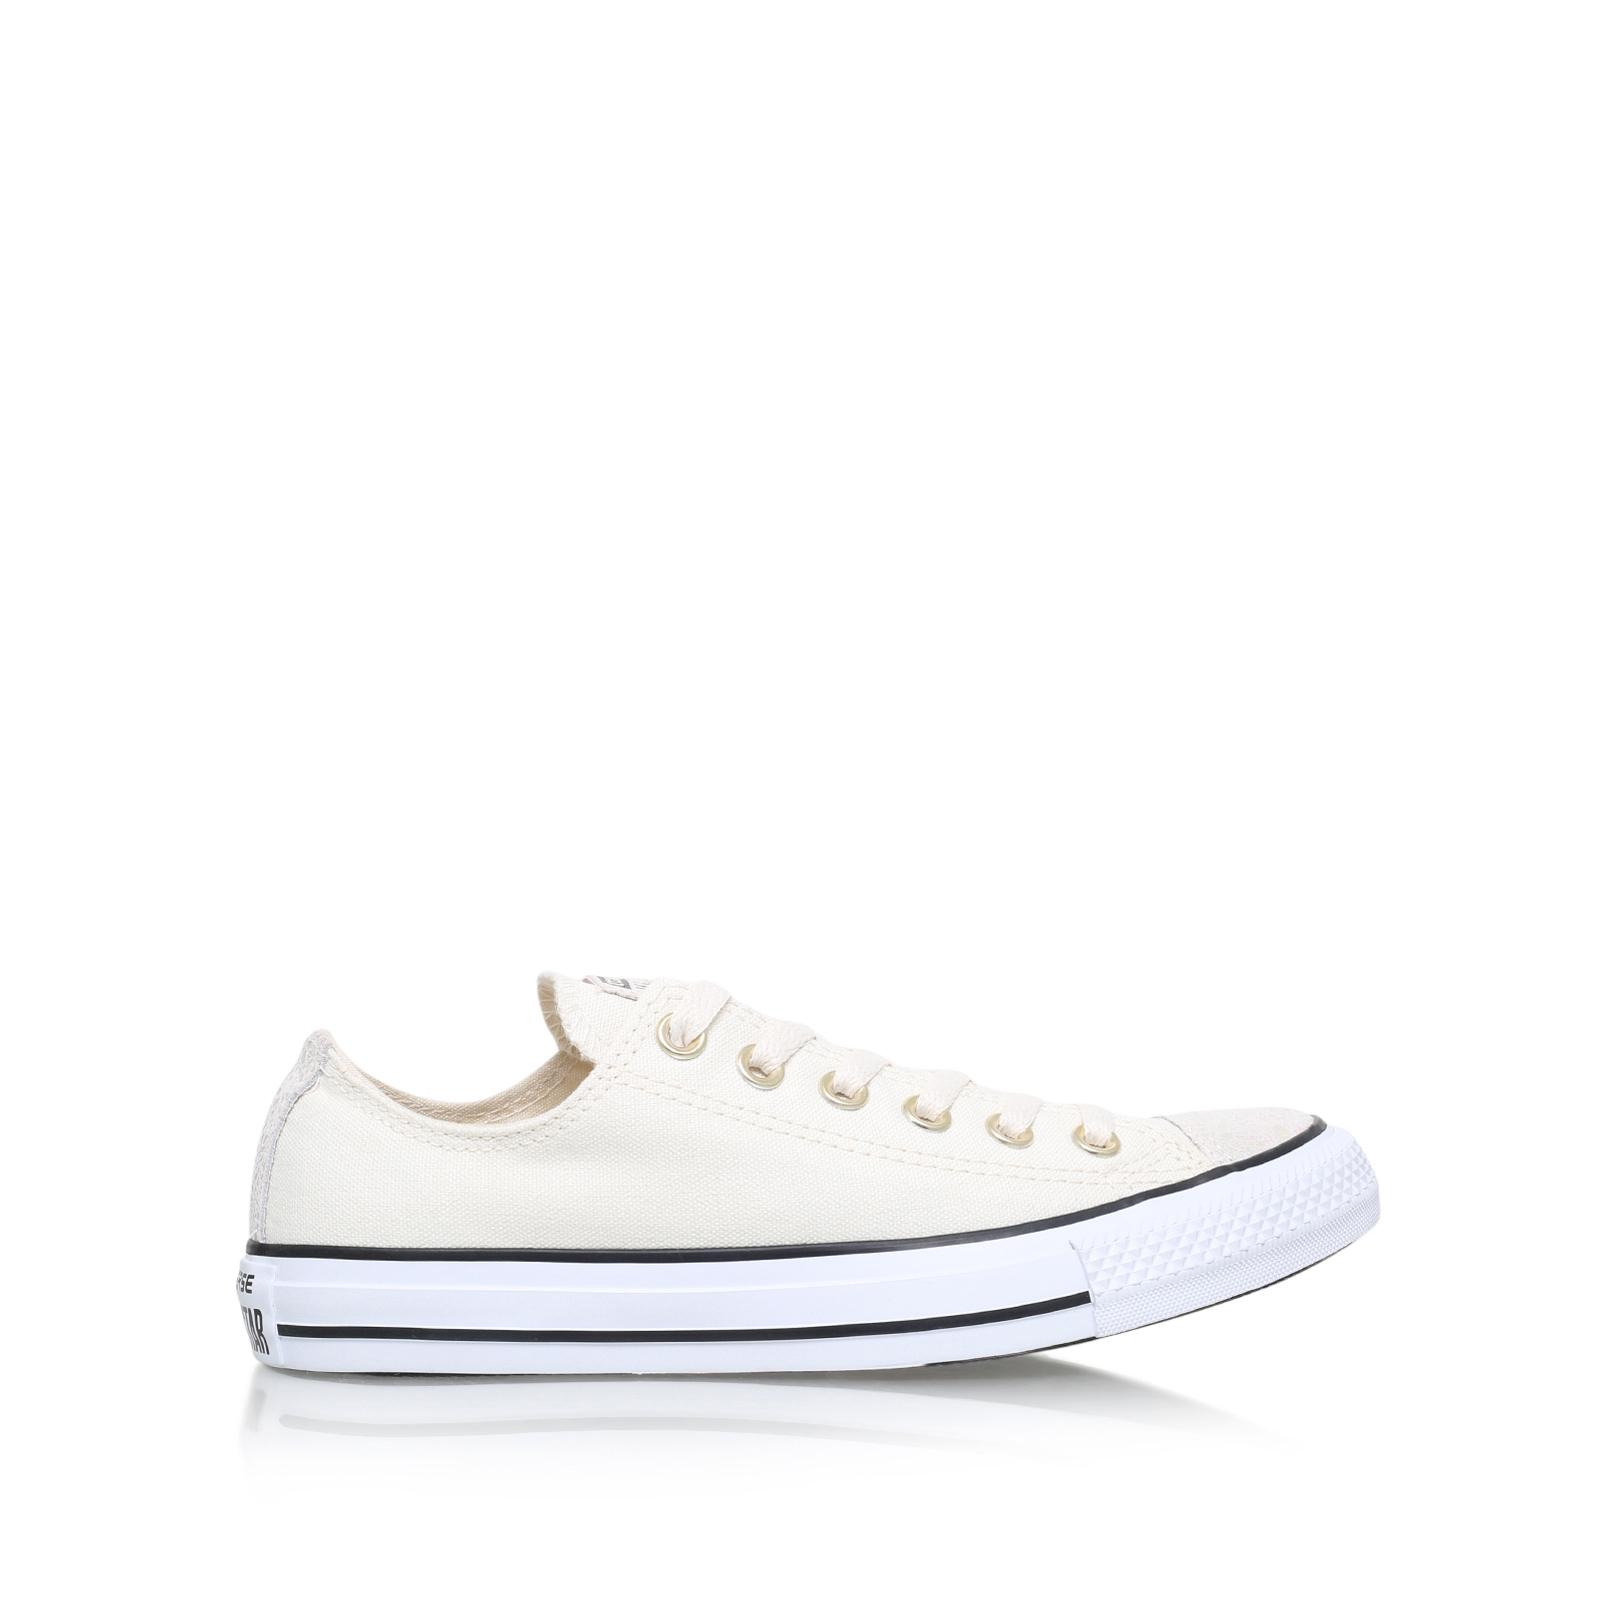 0ef47ba80814 Converse Ct Oil Slick Toe Low in White - Lyst